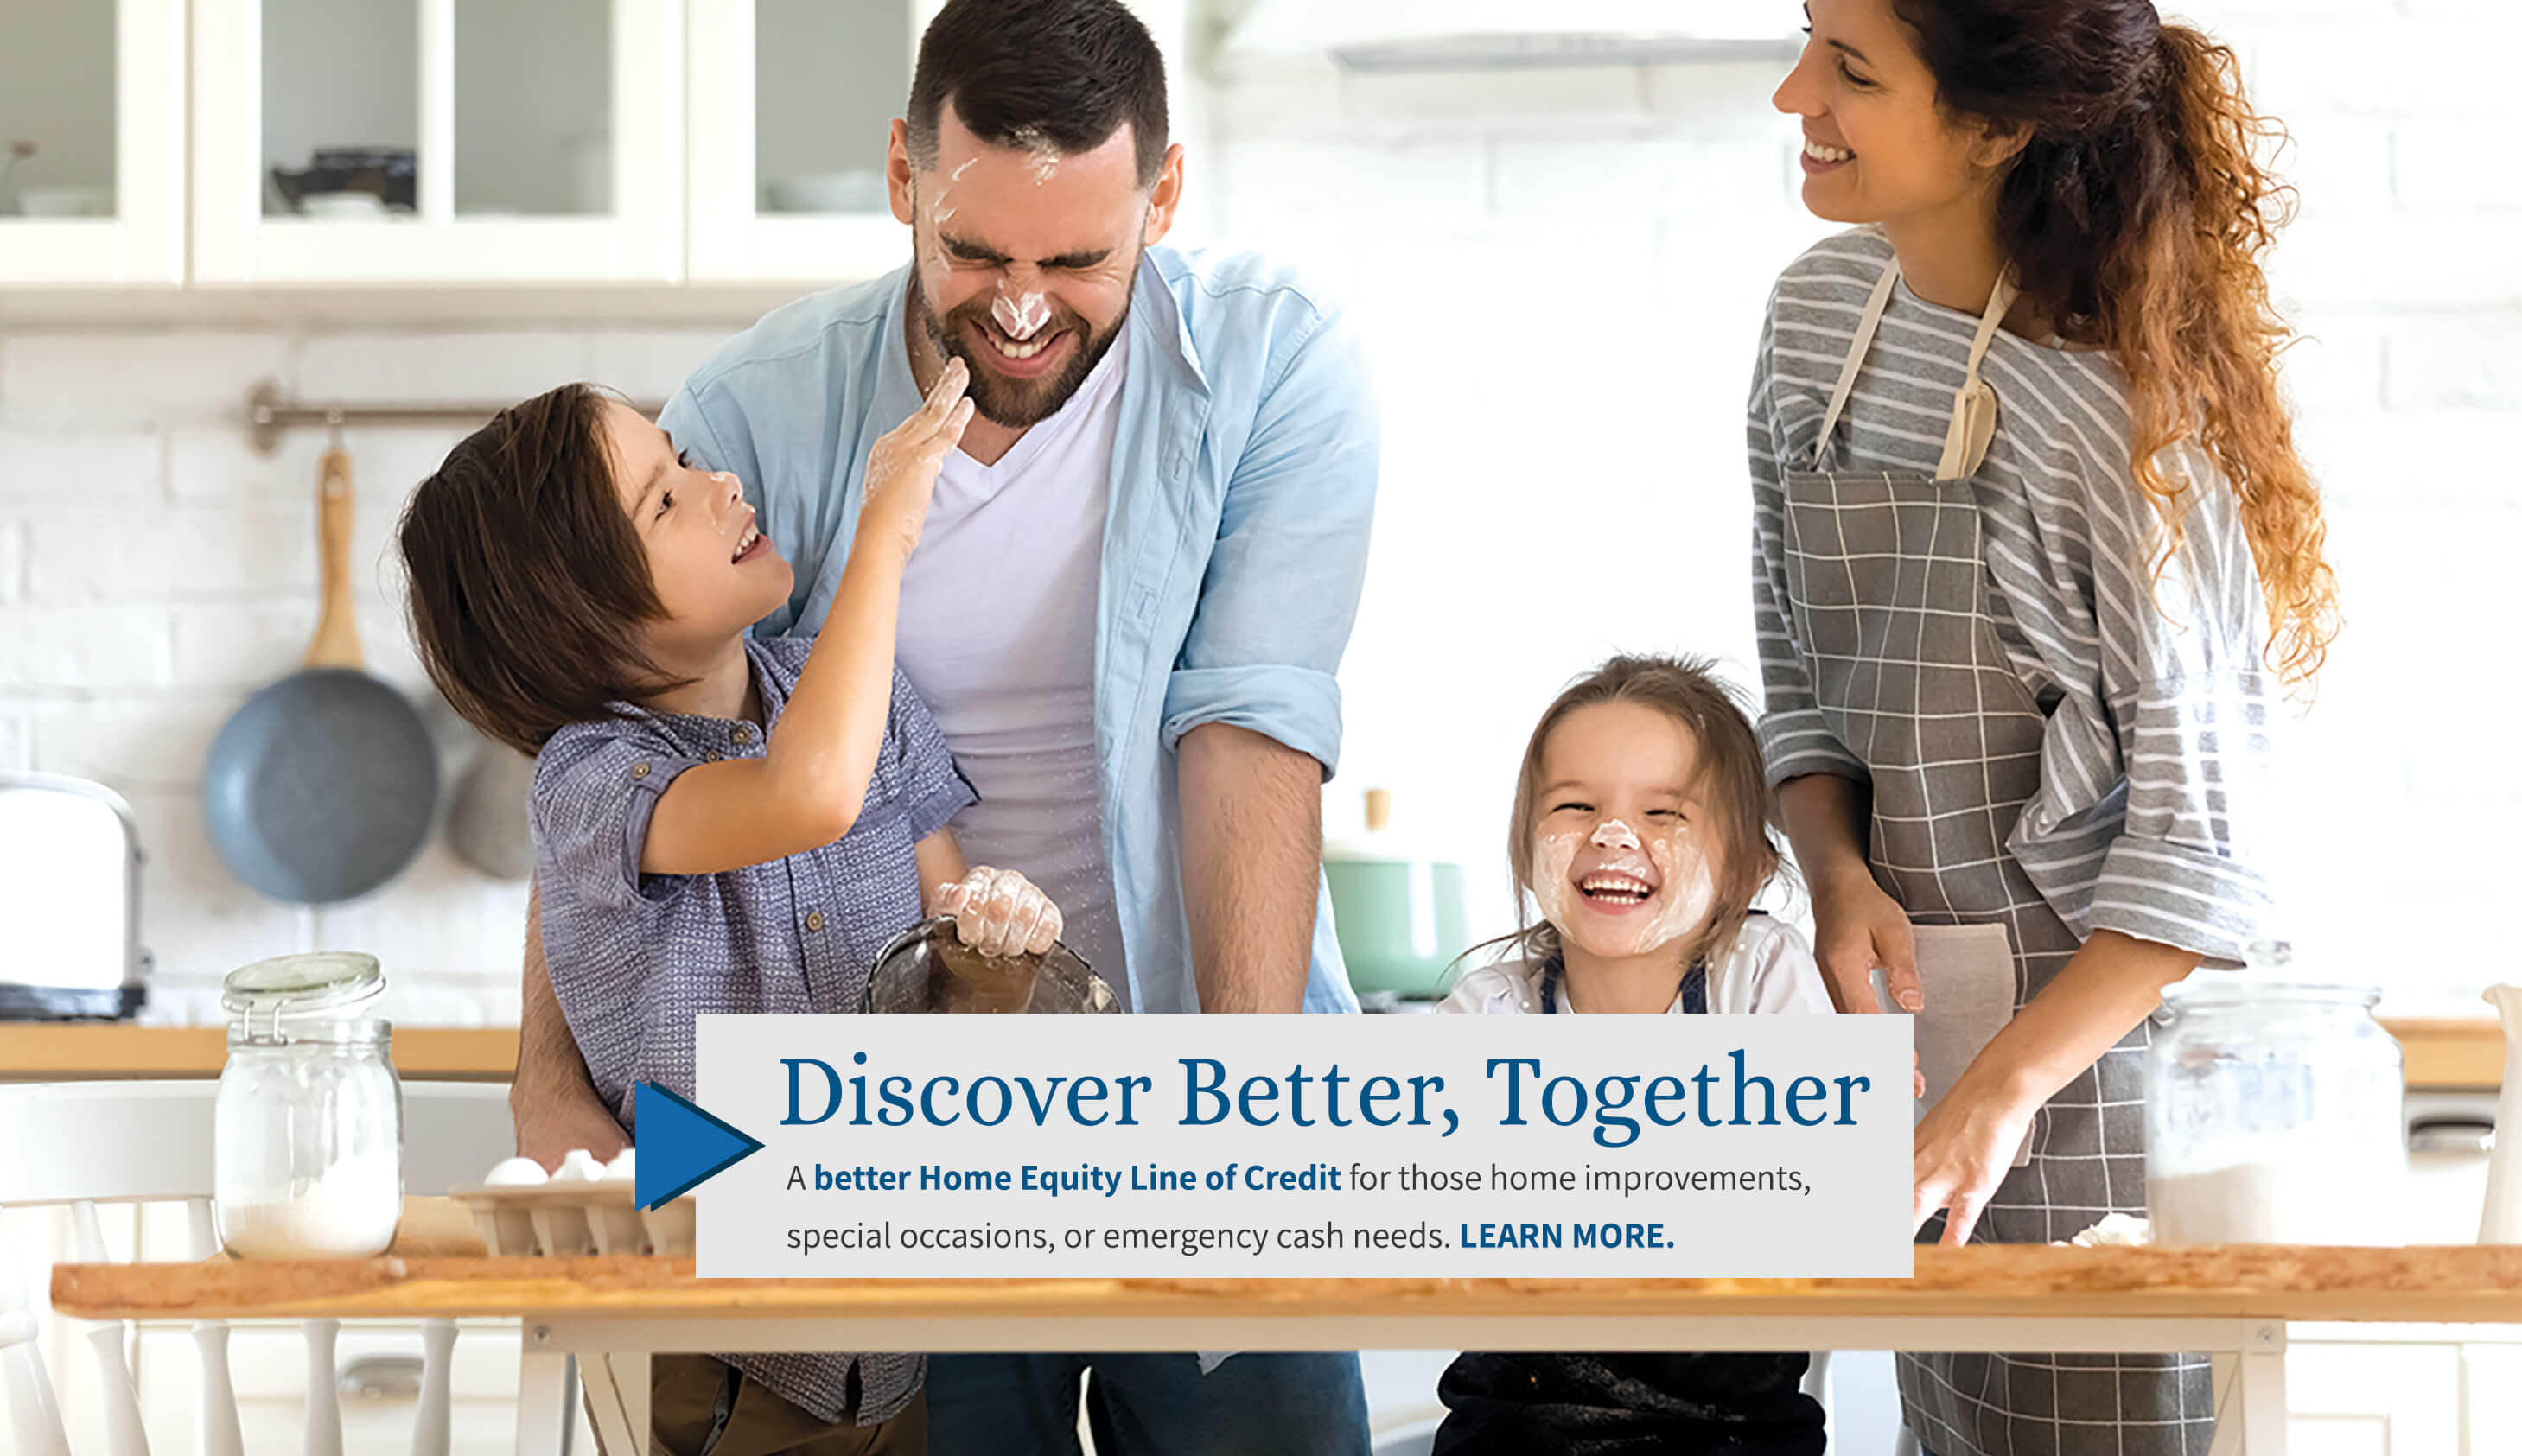 Discover Better, Together. A better Home Equity Line-of-Credit for those home improvements, special occasions, or emergency cash needs. Learn More.